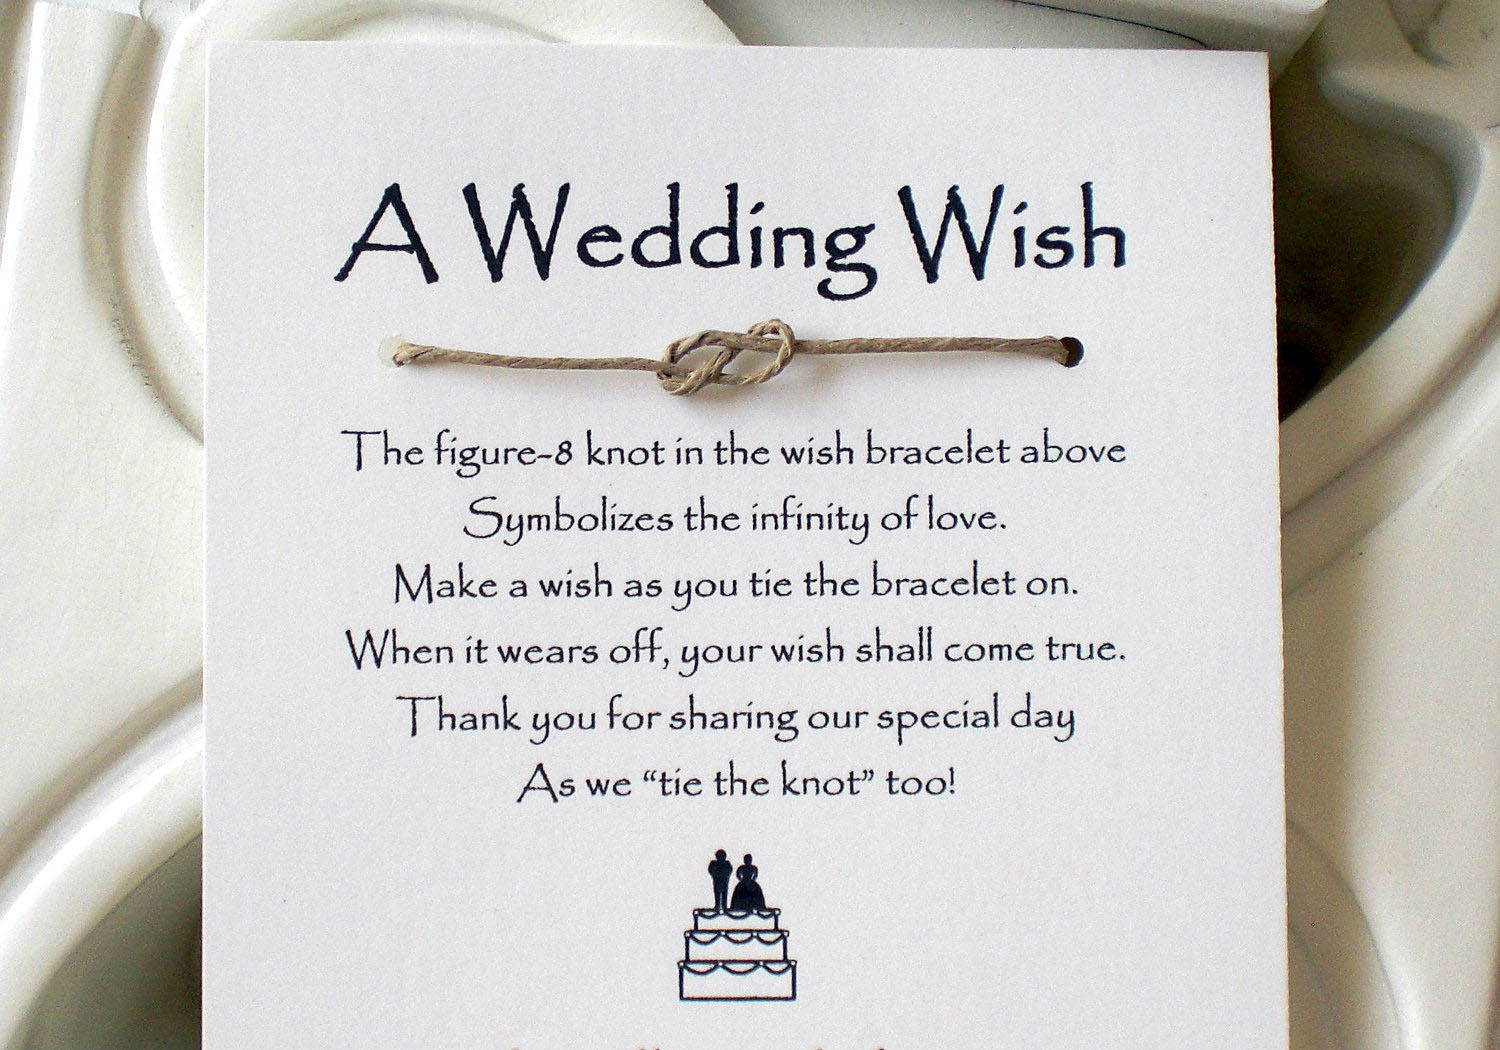 Love Marriage Quotes Awesome Love Marriage Quotes For Wedding Cards  Good Morning Wishesgood